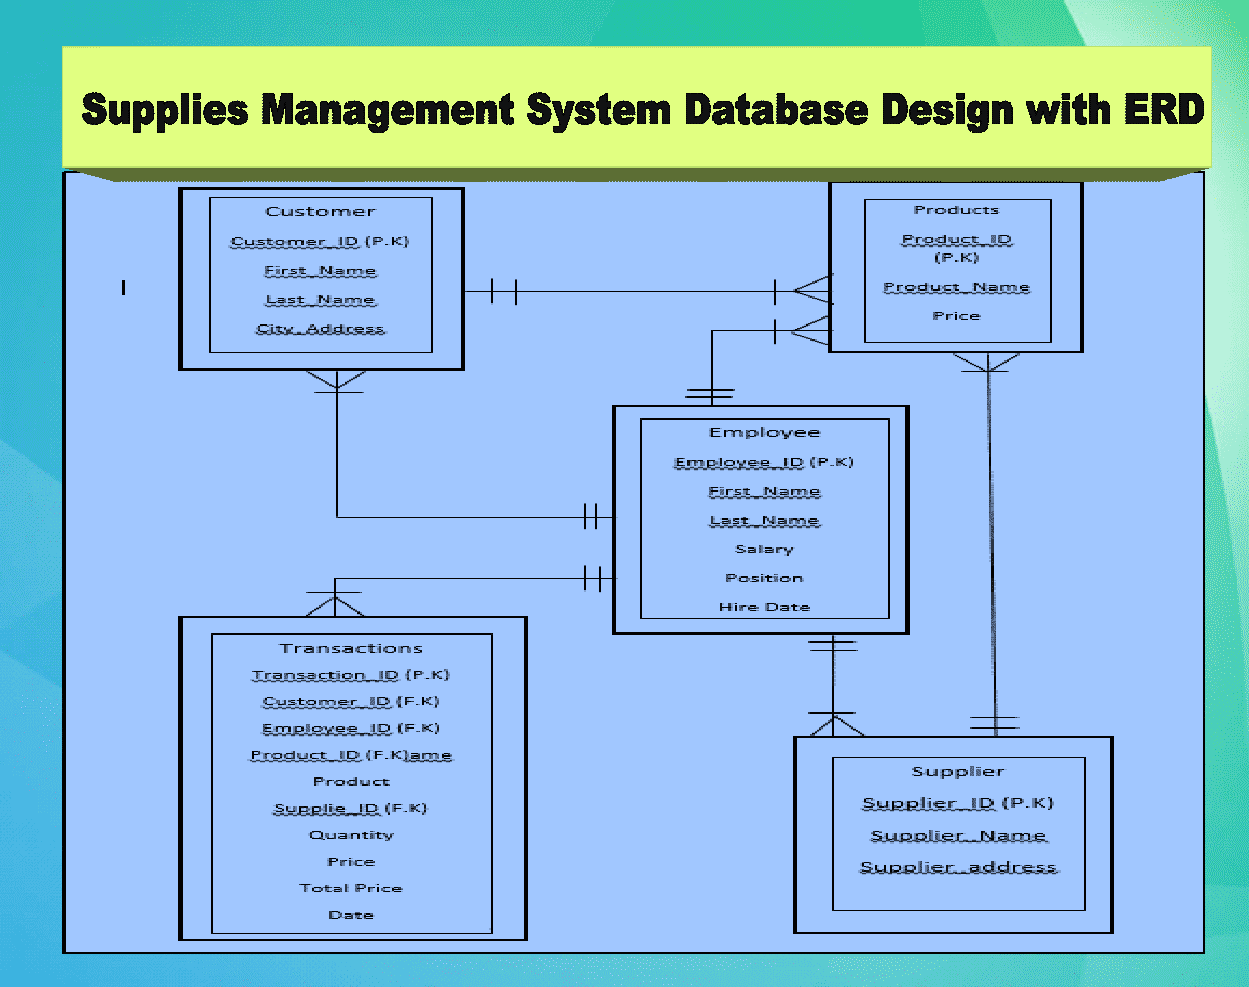 Supplies Management System Database Design with ERD